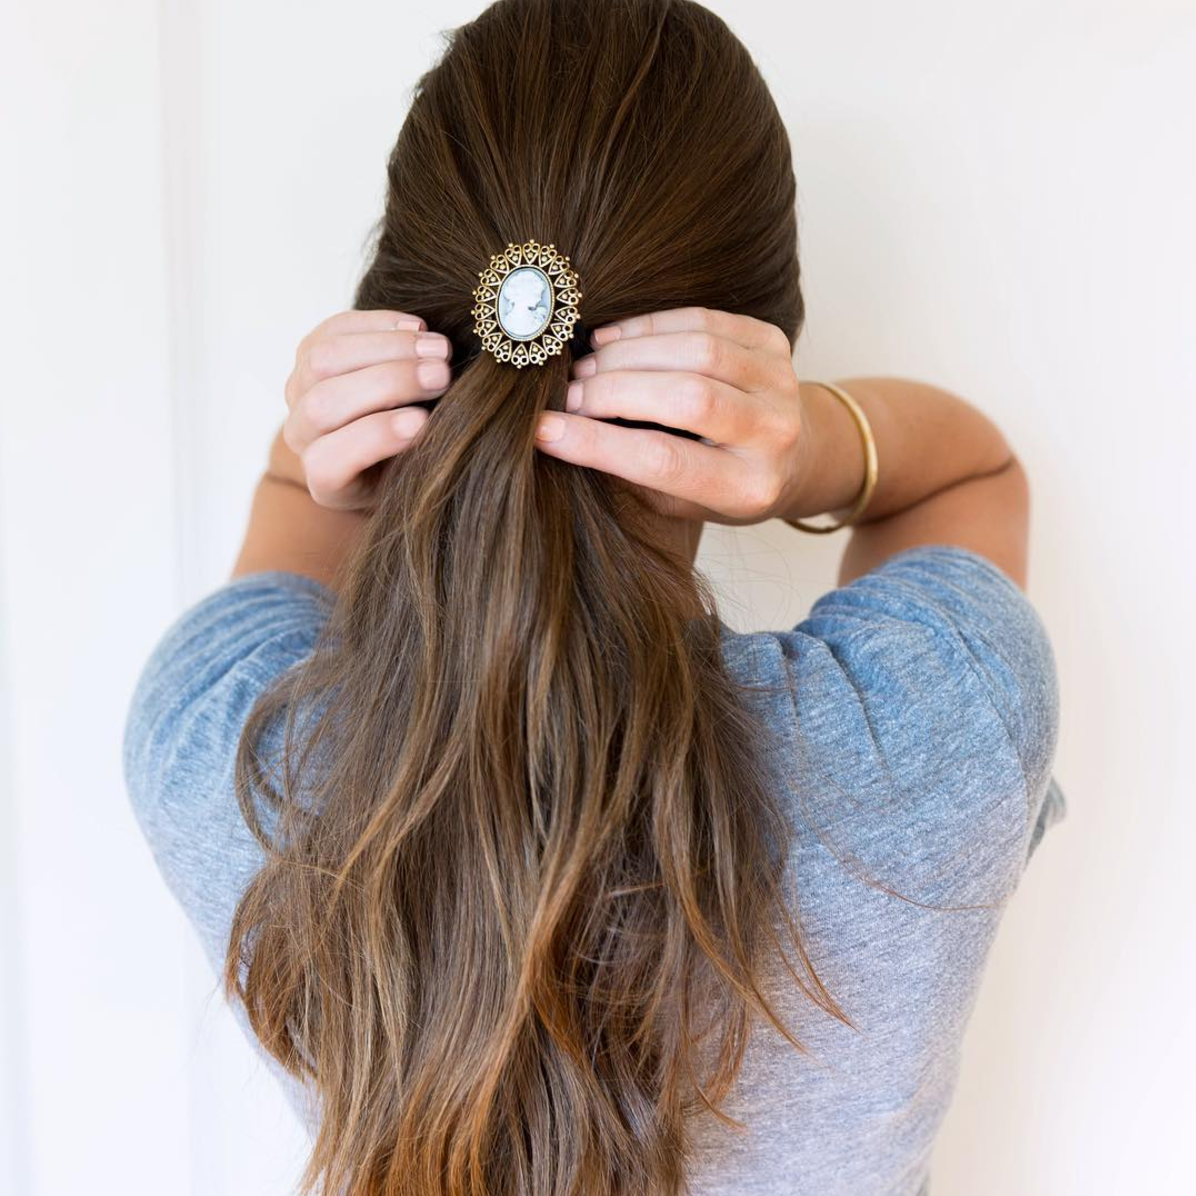 Put a Pin On It: A Brooch That Is (Brooch in her hair) | Click through for the details. | glitterinc.com | @glitterinc